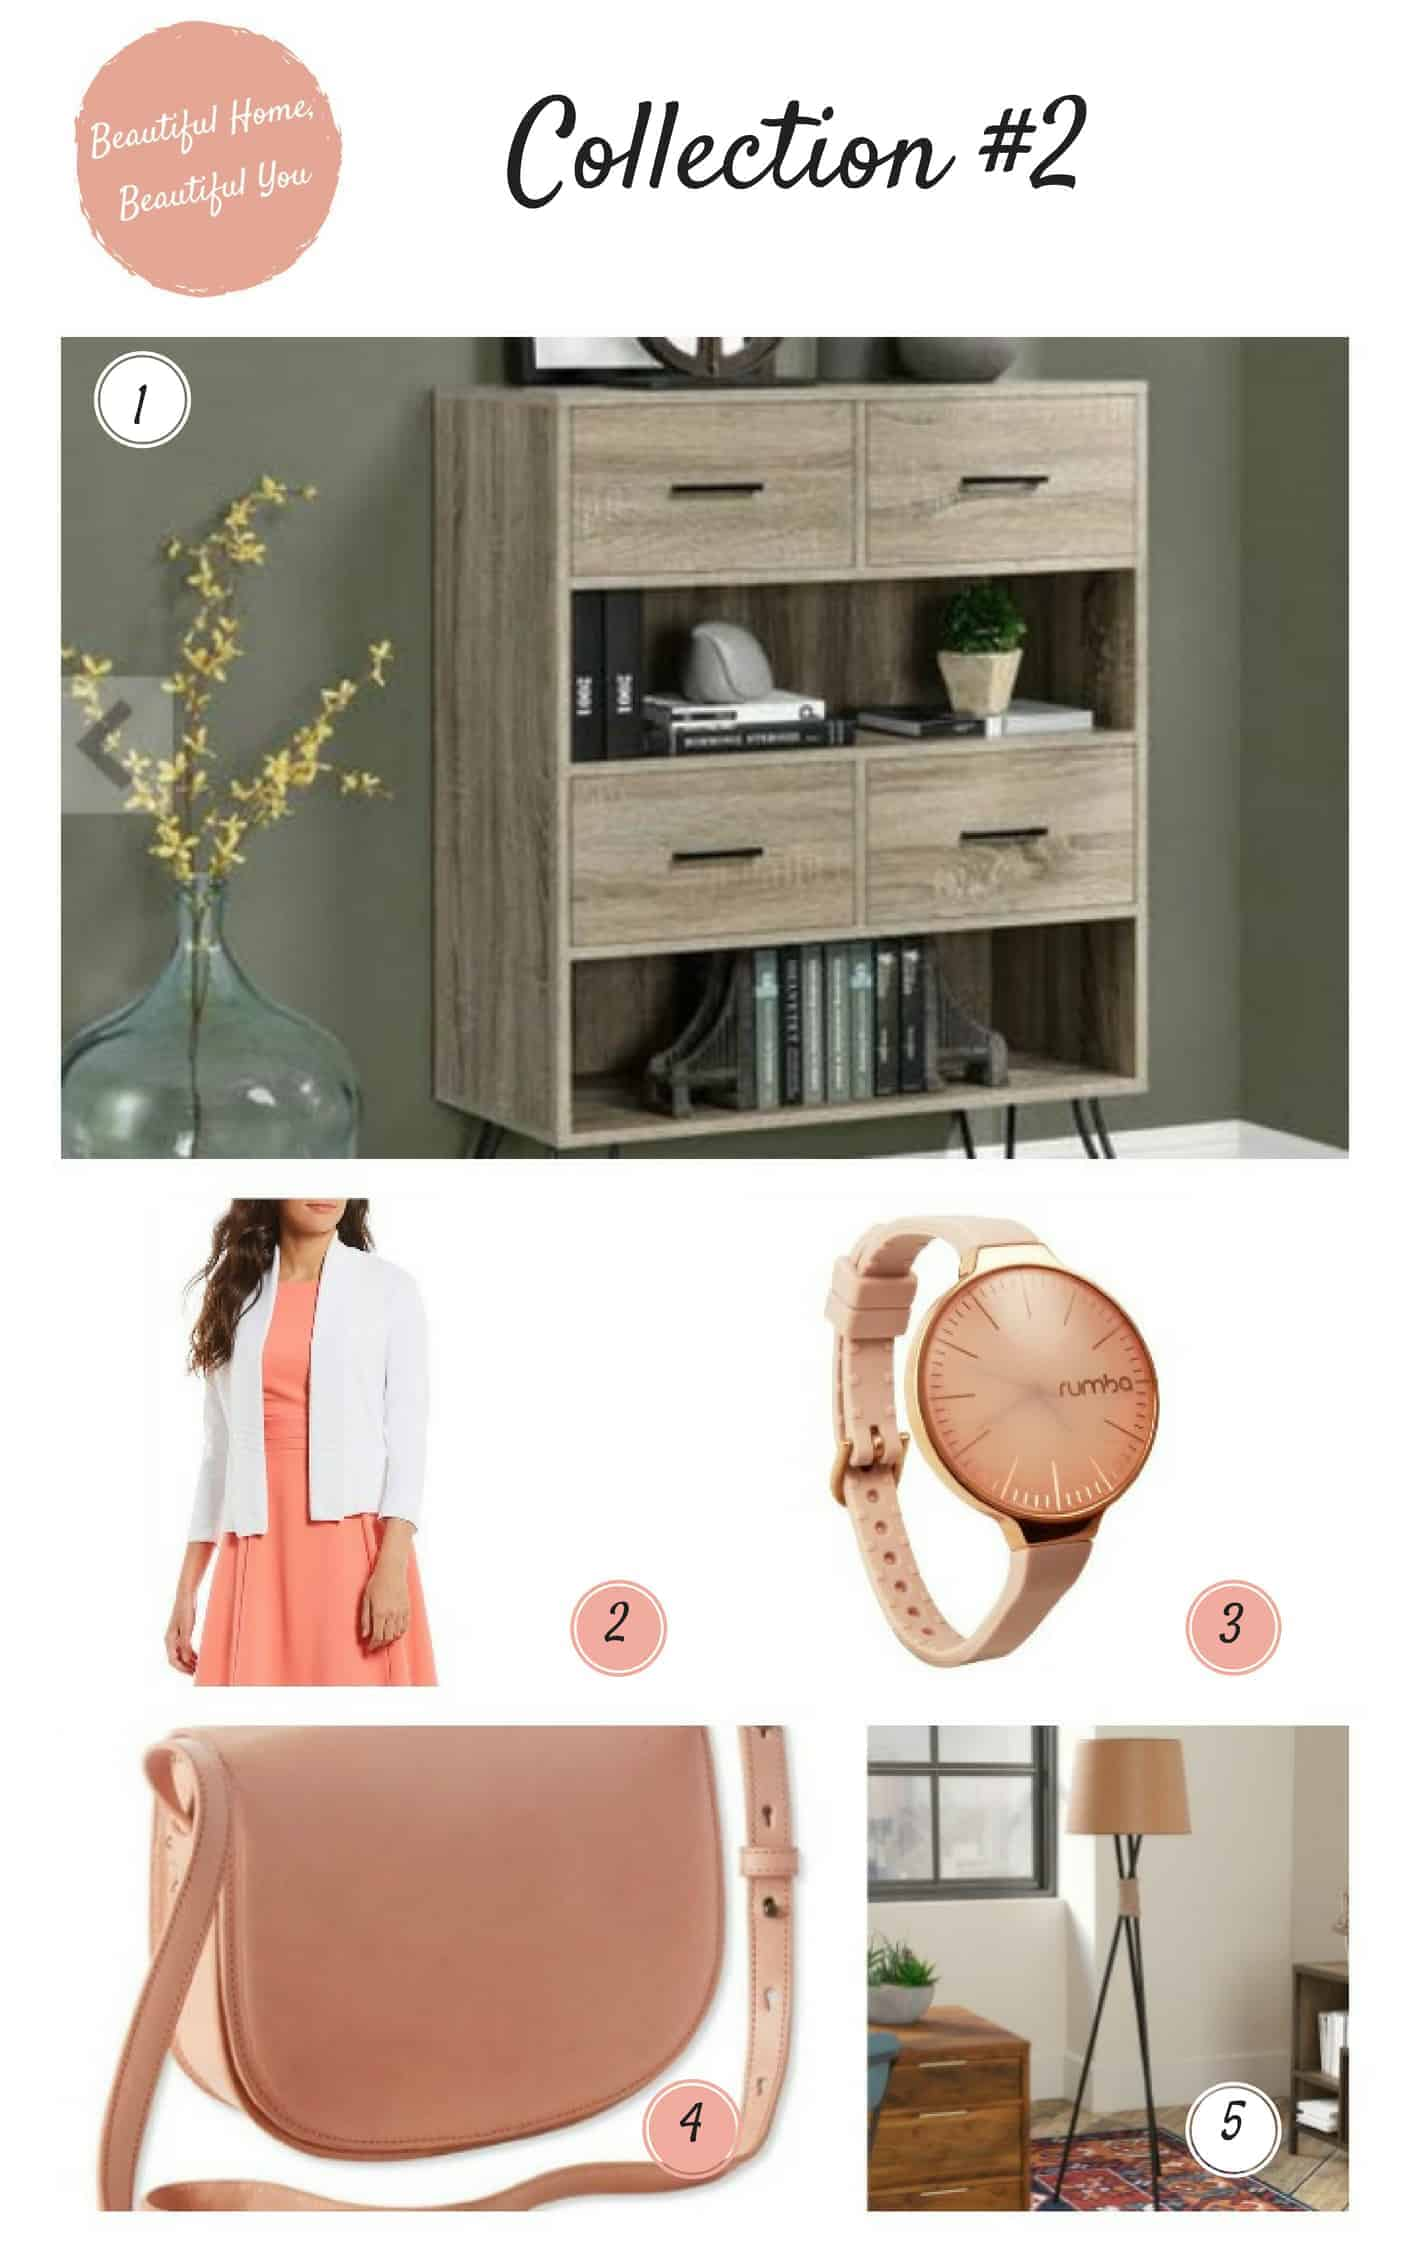 beautiful home beautiful you collection #2 - fashion and home inspirations